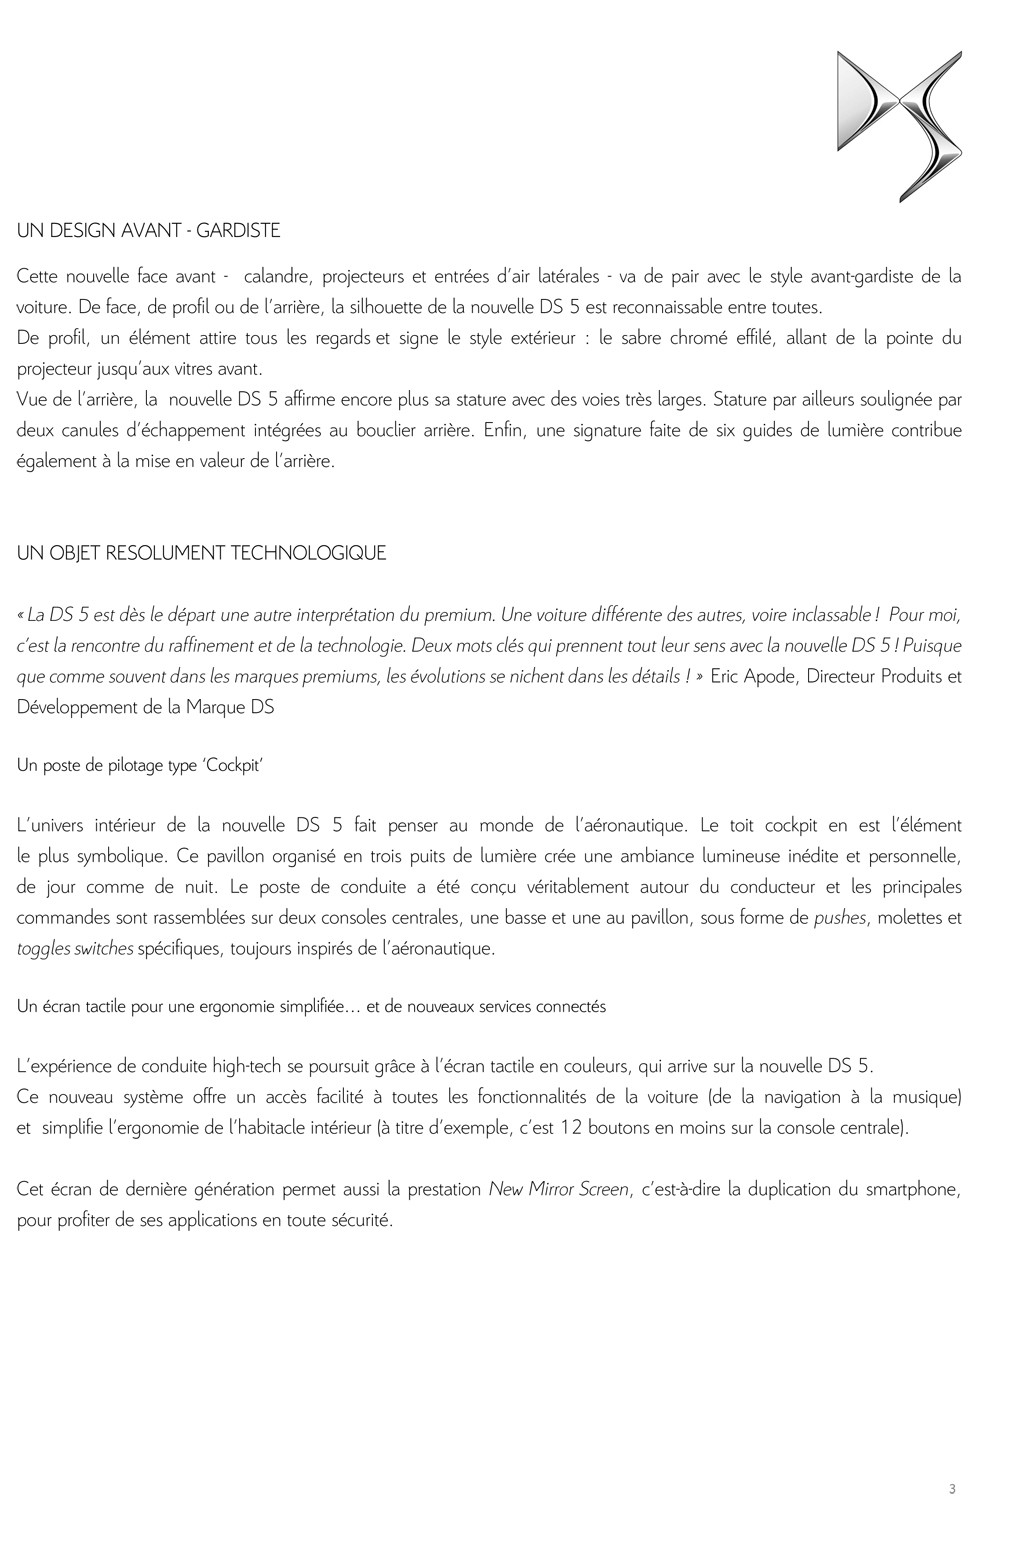 [SUJET OFFICIEL] DS 5 restylée (photos officielles p.16) - Page 10 Dp_ds_12